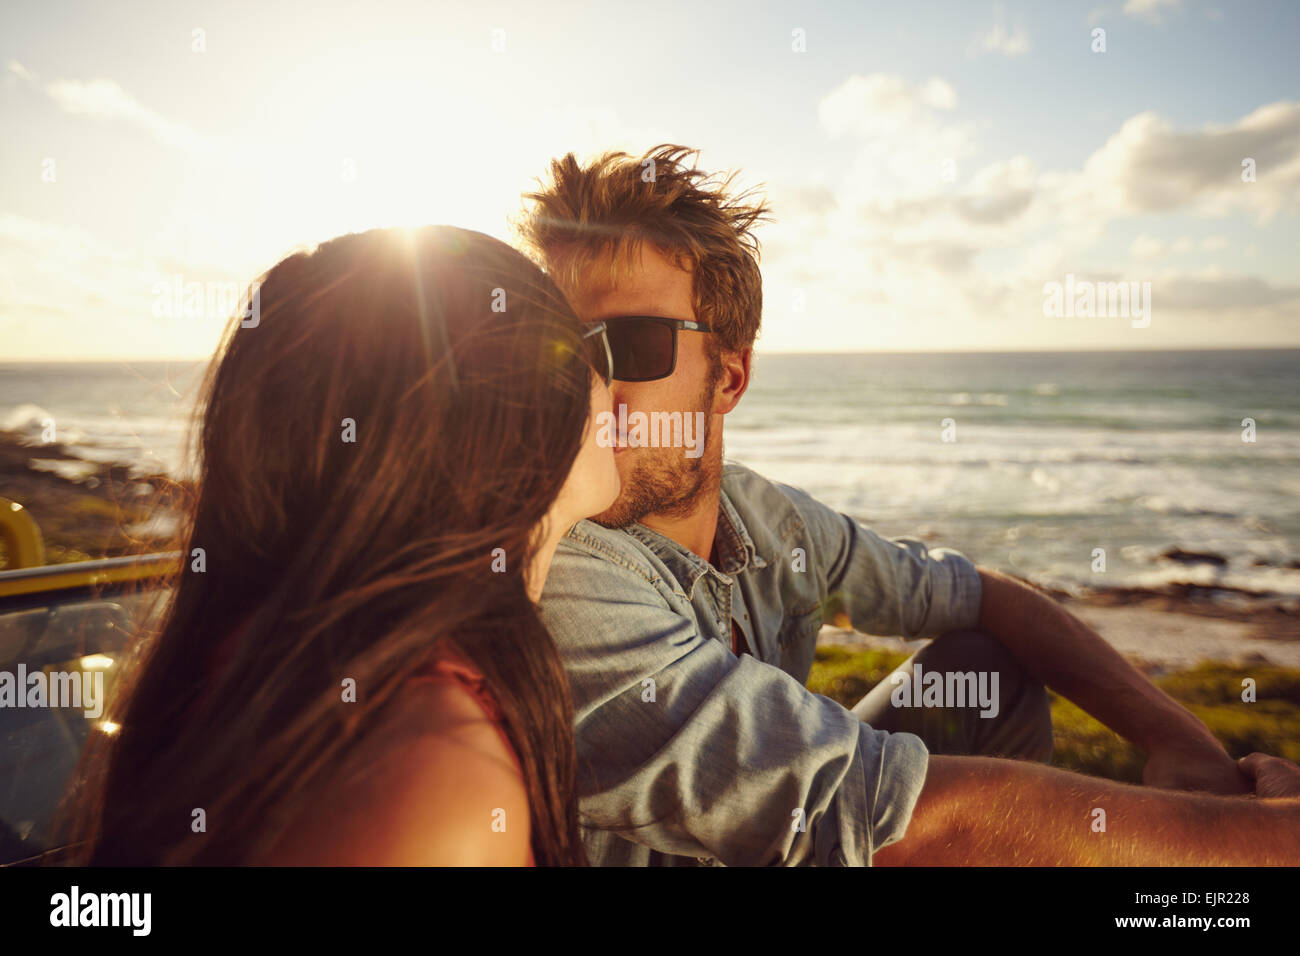 Affectionate young couple kissing. Loving young couple with sea shore in background. Romantic couple on summer holiday. - Stock Image